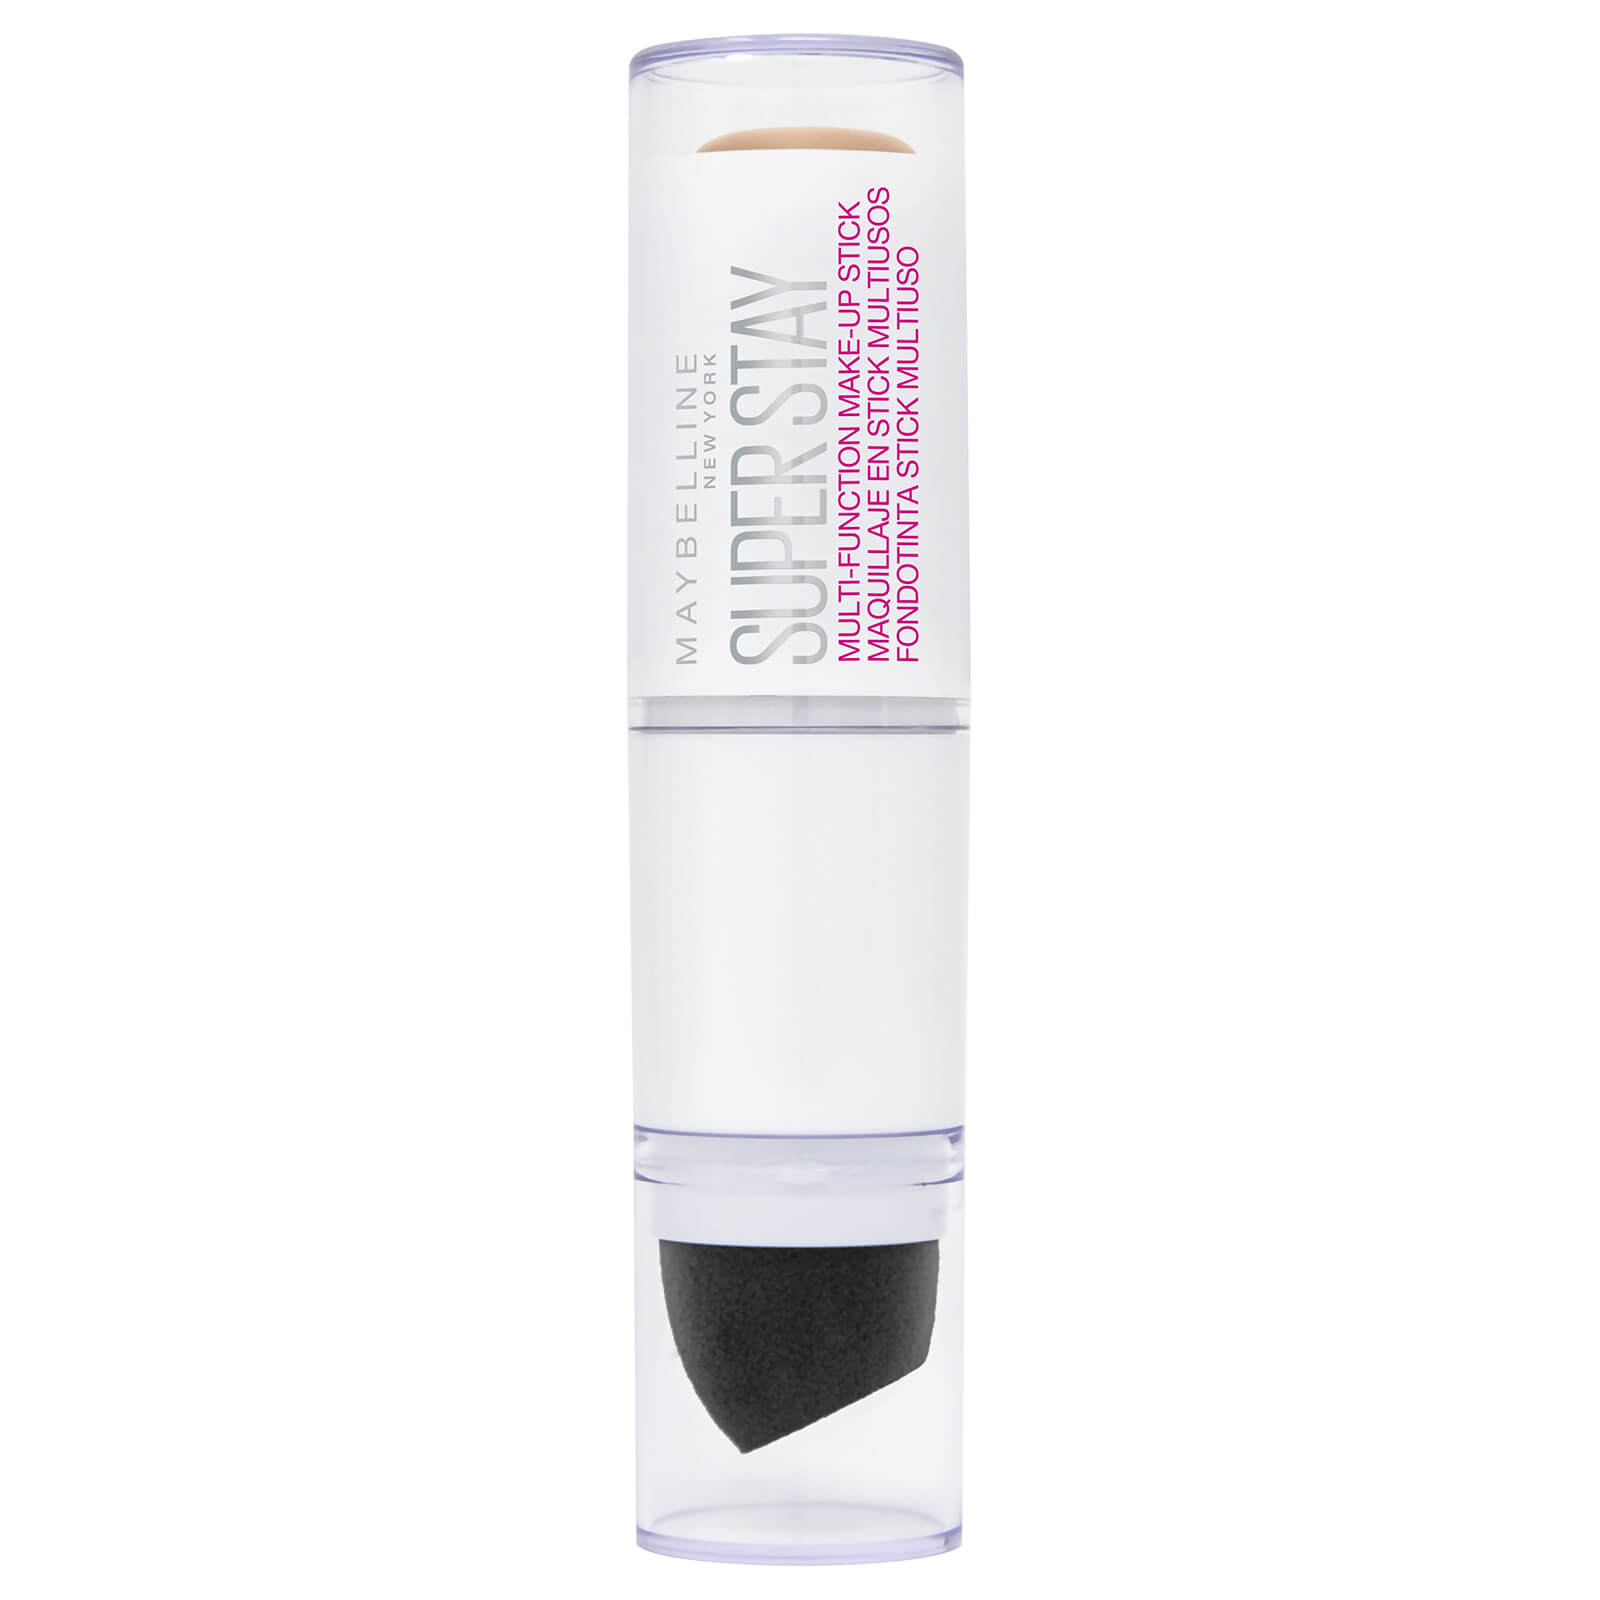 Maybelline SuperStay Foundation Stick 7g (Various Shades) - 003 True Ivory